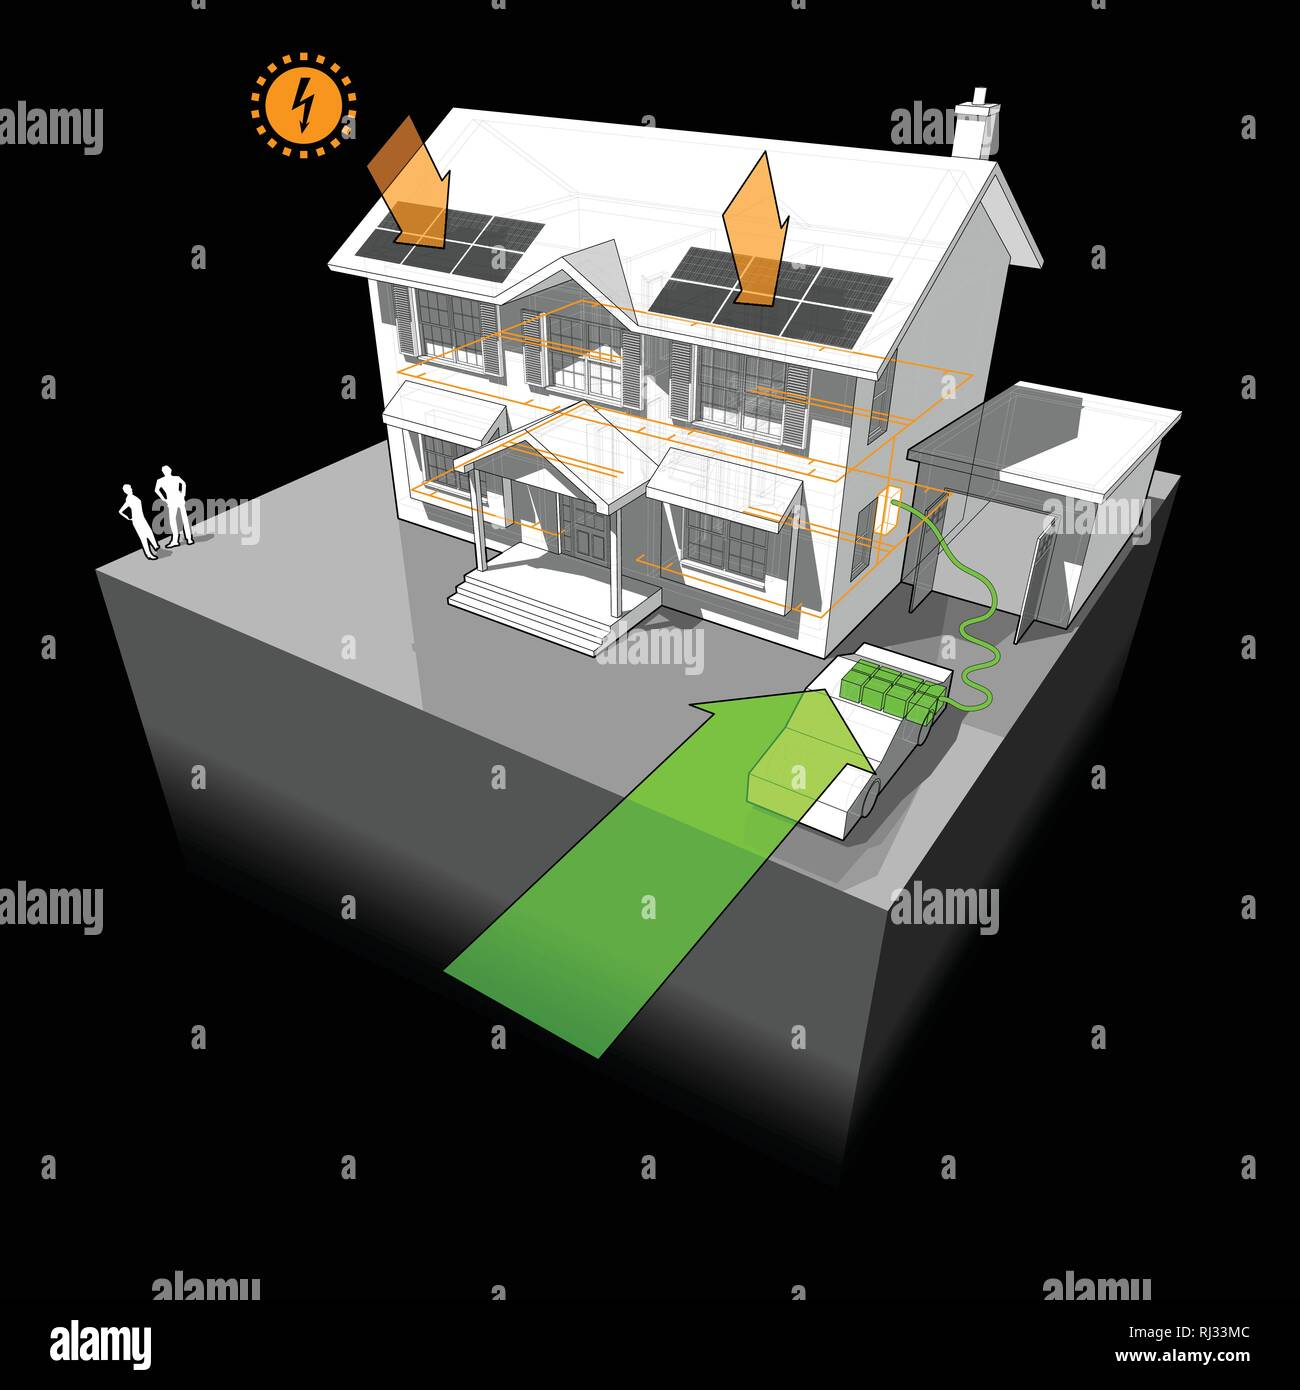 diagram of a classic colonial house powered by battery from electro car with photovoltaic panels on the roof as source of extra electric energy - Stock Vector